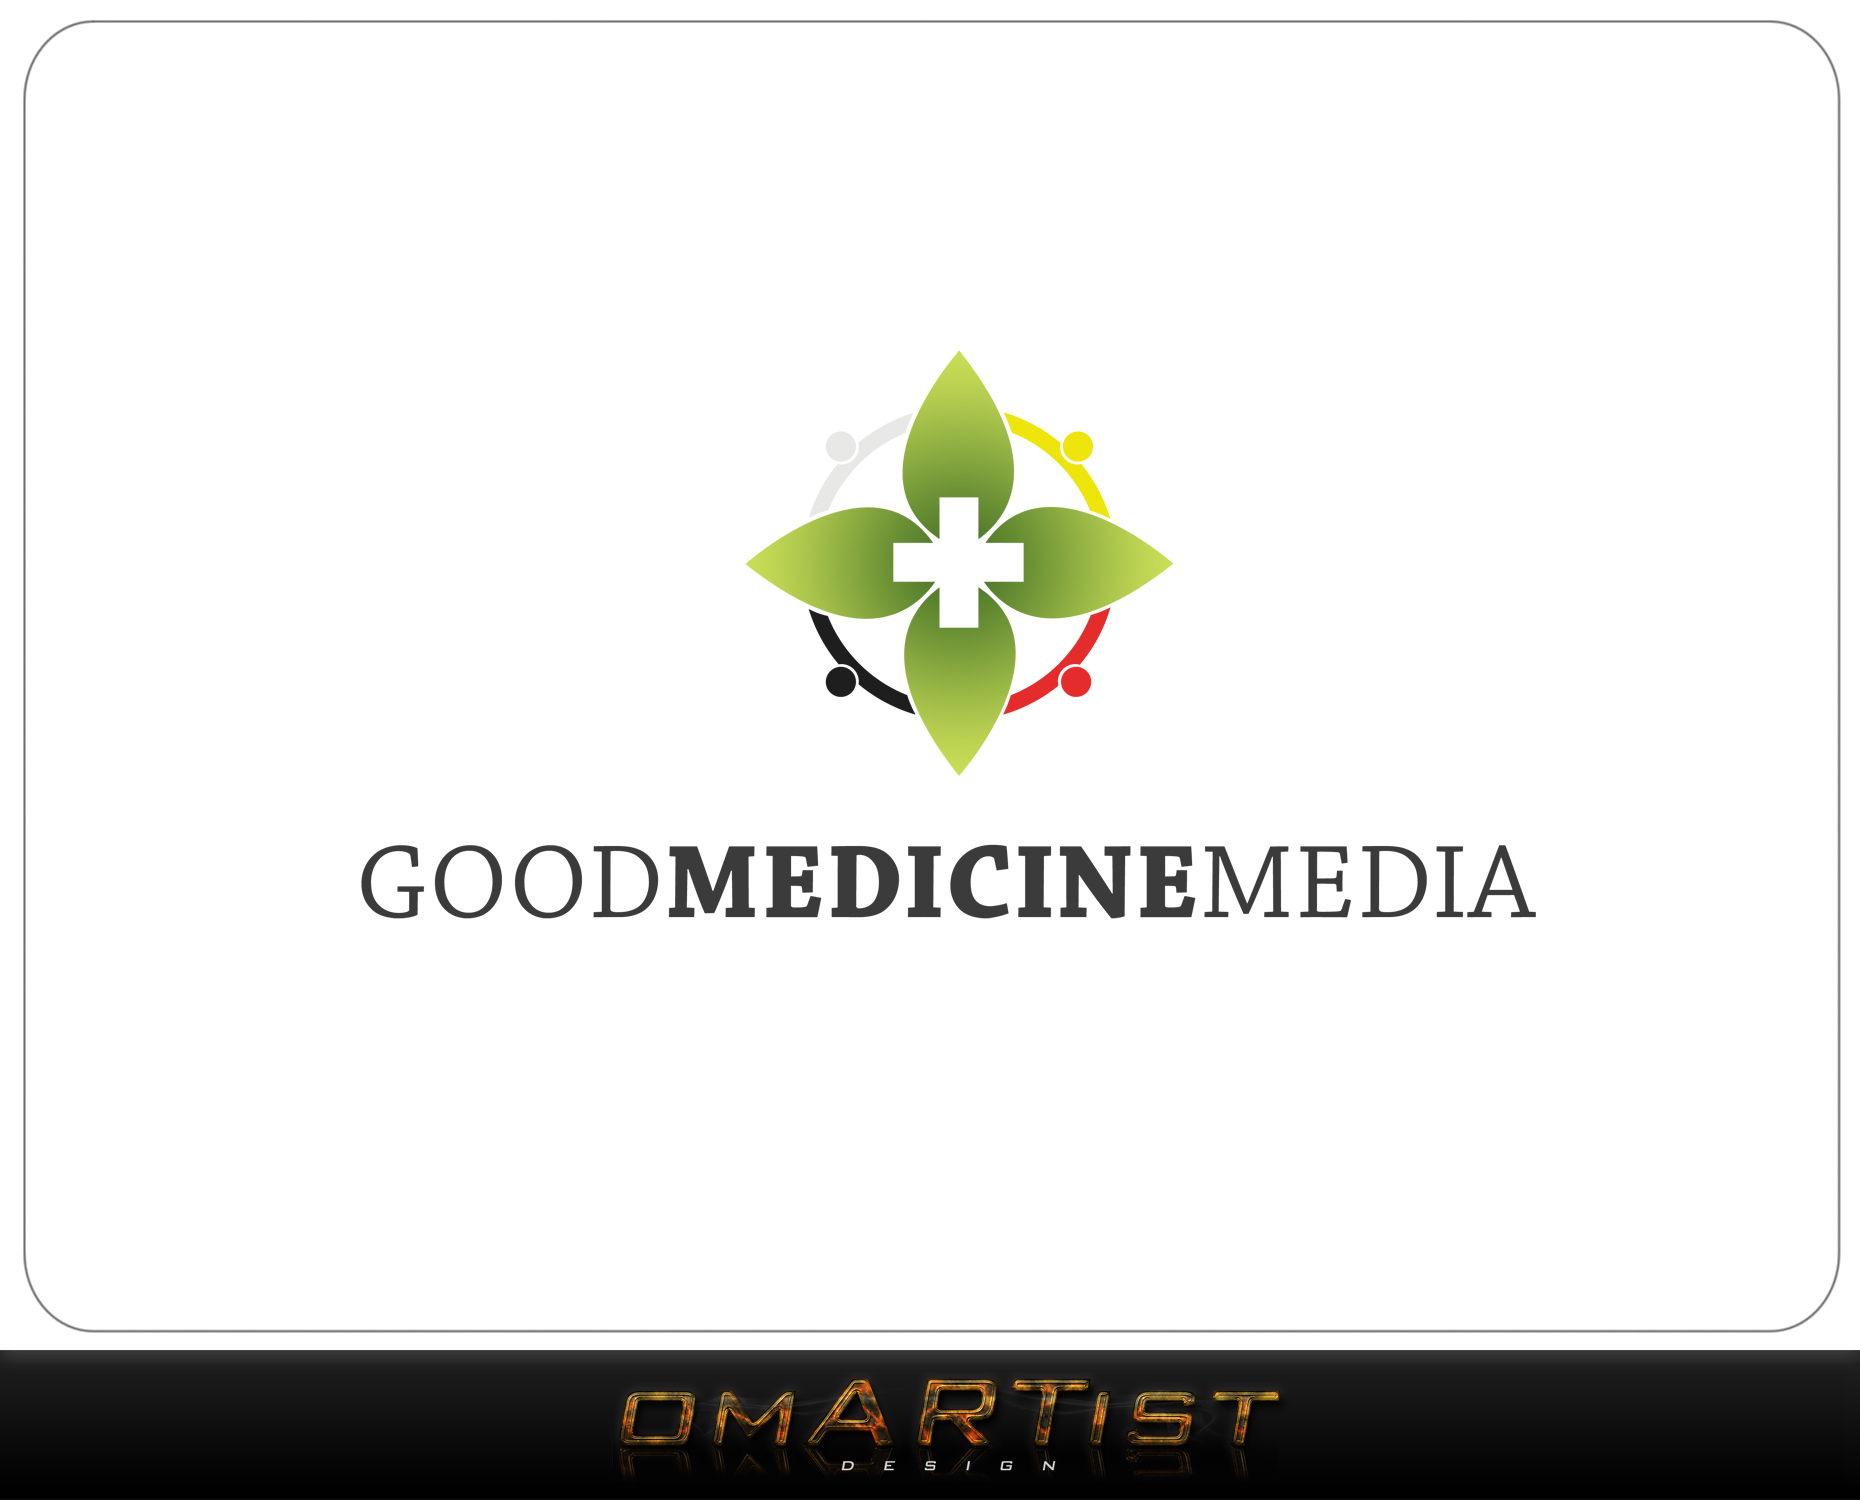 Logo Design by omARTist - Entry No. 107 in the Logo Design Contest Good Medicine Media Logo Design.